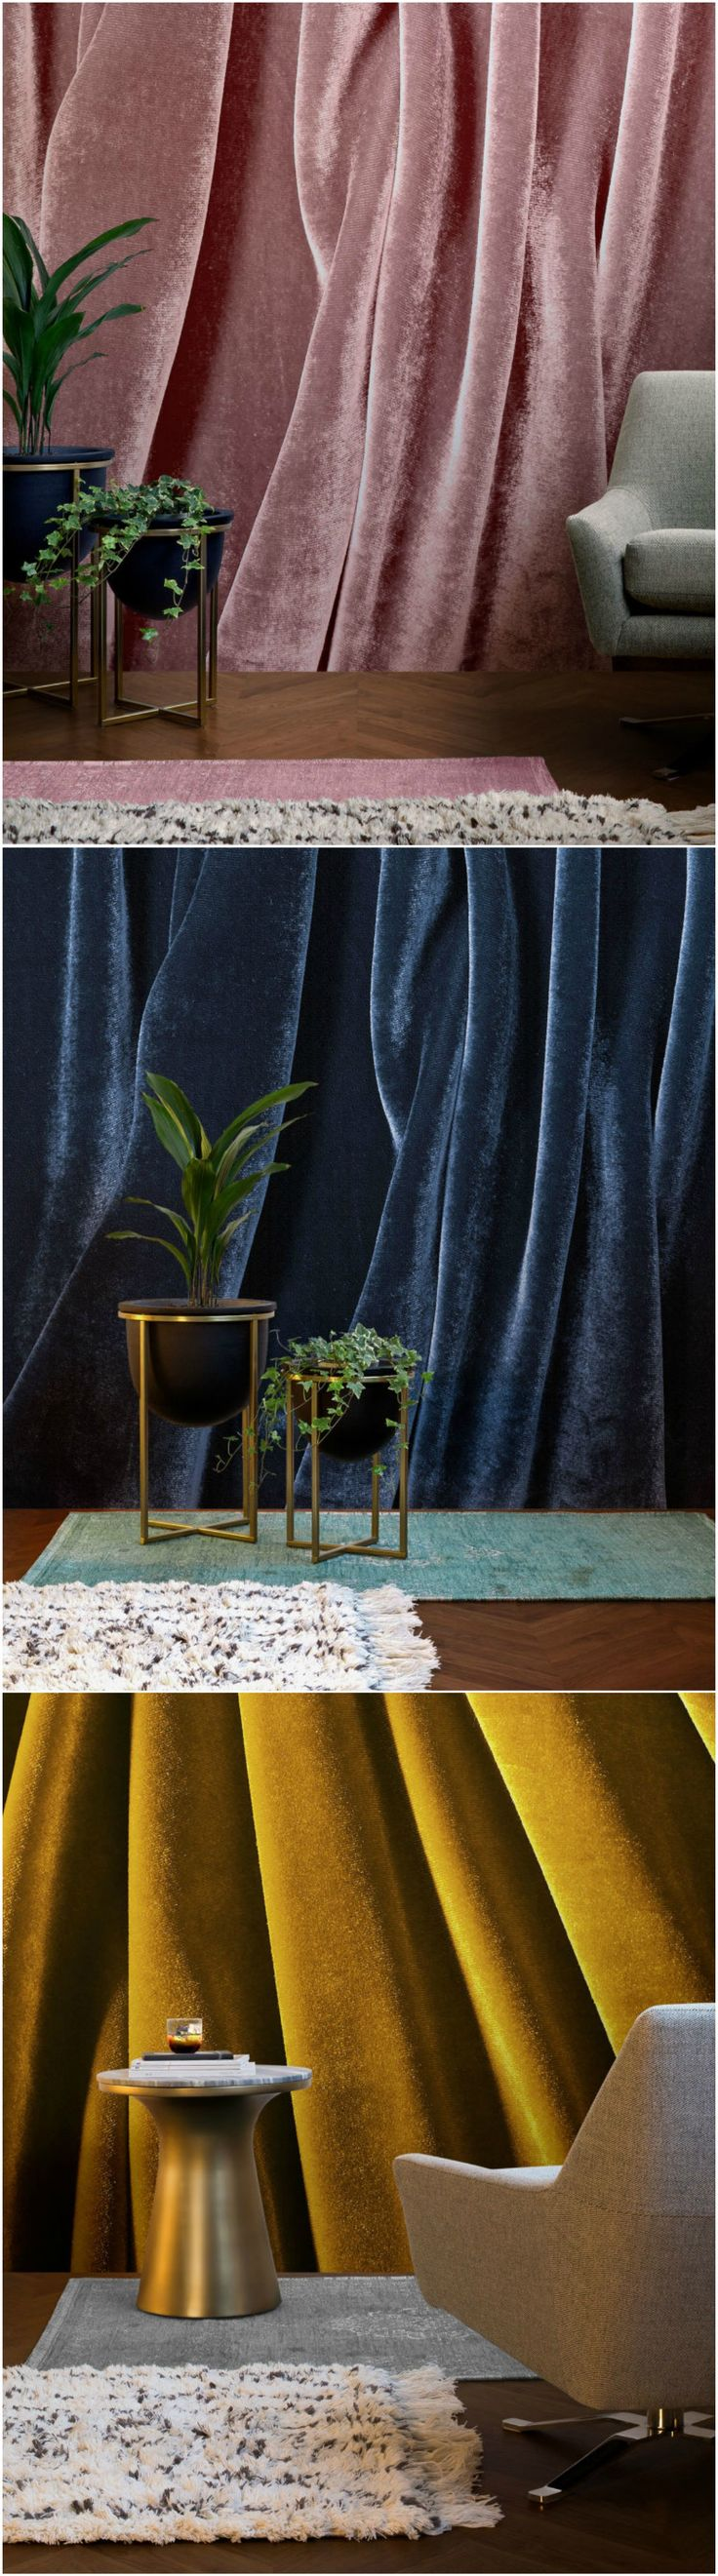 Murals Wallpaper has designed the on-trend Opulent Velvet collection which promises to bring dramatic colour, sensuality and texture to any interior. The elegant, drape-like design with stylised folds, boasts rich, comforting hues in different colourways including dark blue, emerald, mustard and dusky pink.  #walls #walldecor #mural #wallmurals #wallpaper #velvet #pink #blue #mustard